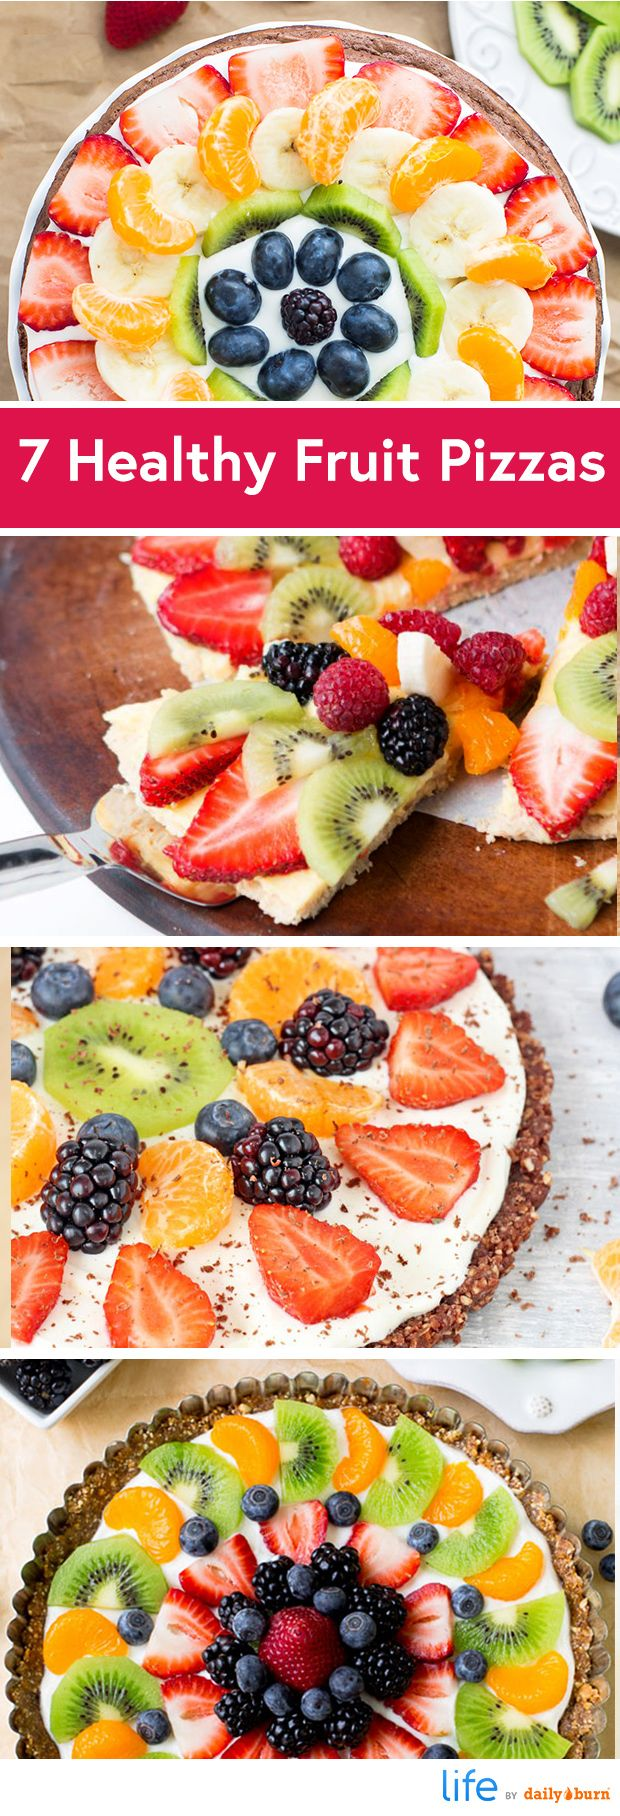 7 Healthy Fruit Pizza Recipes